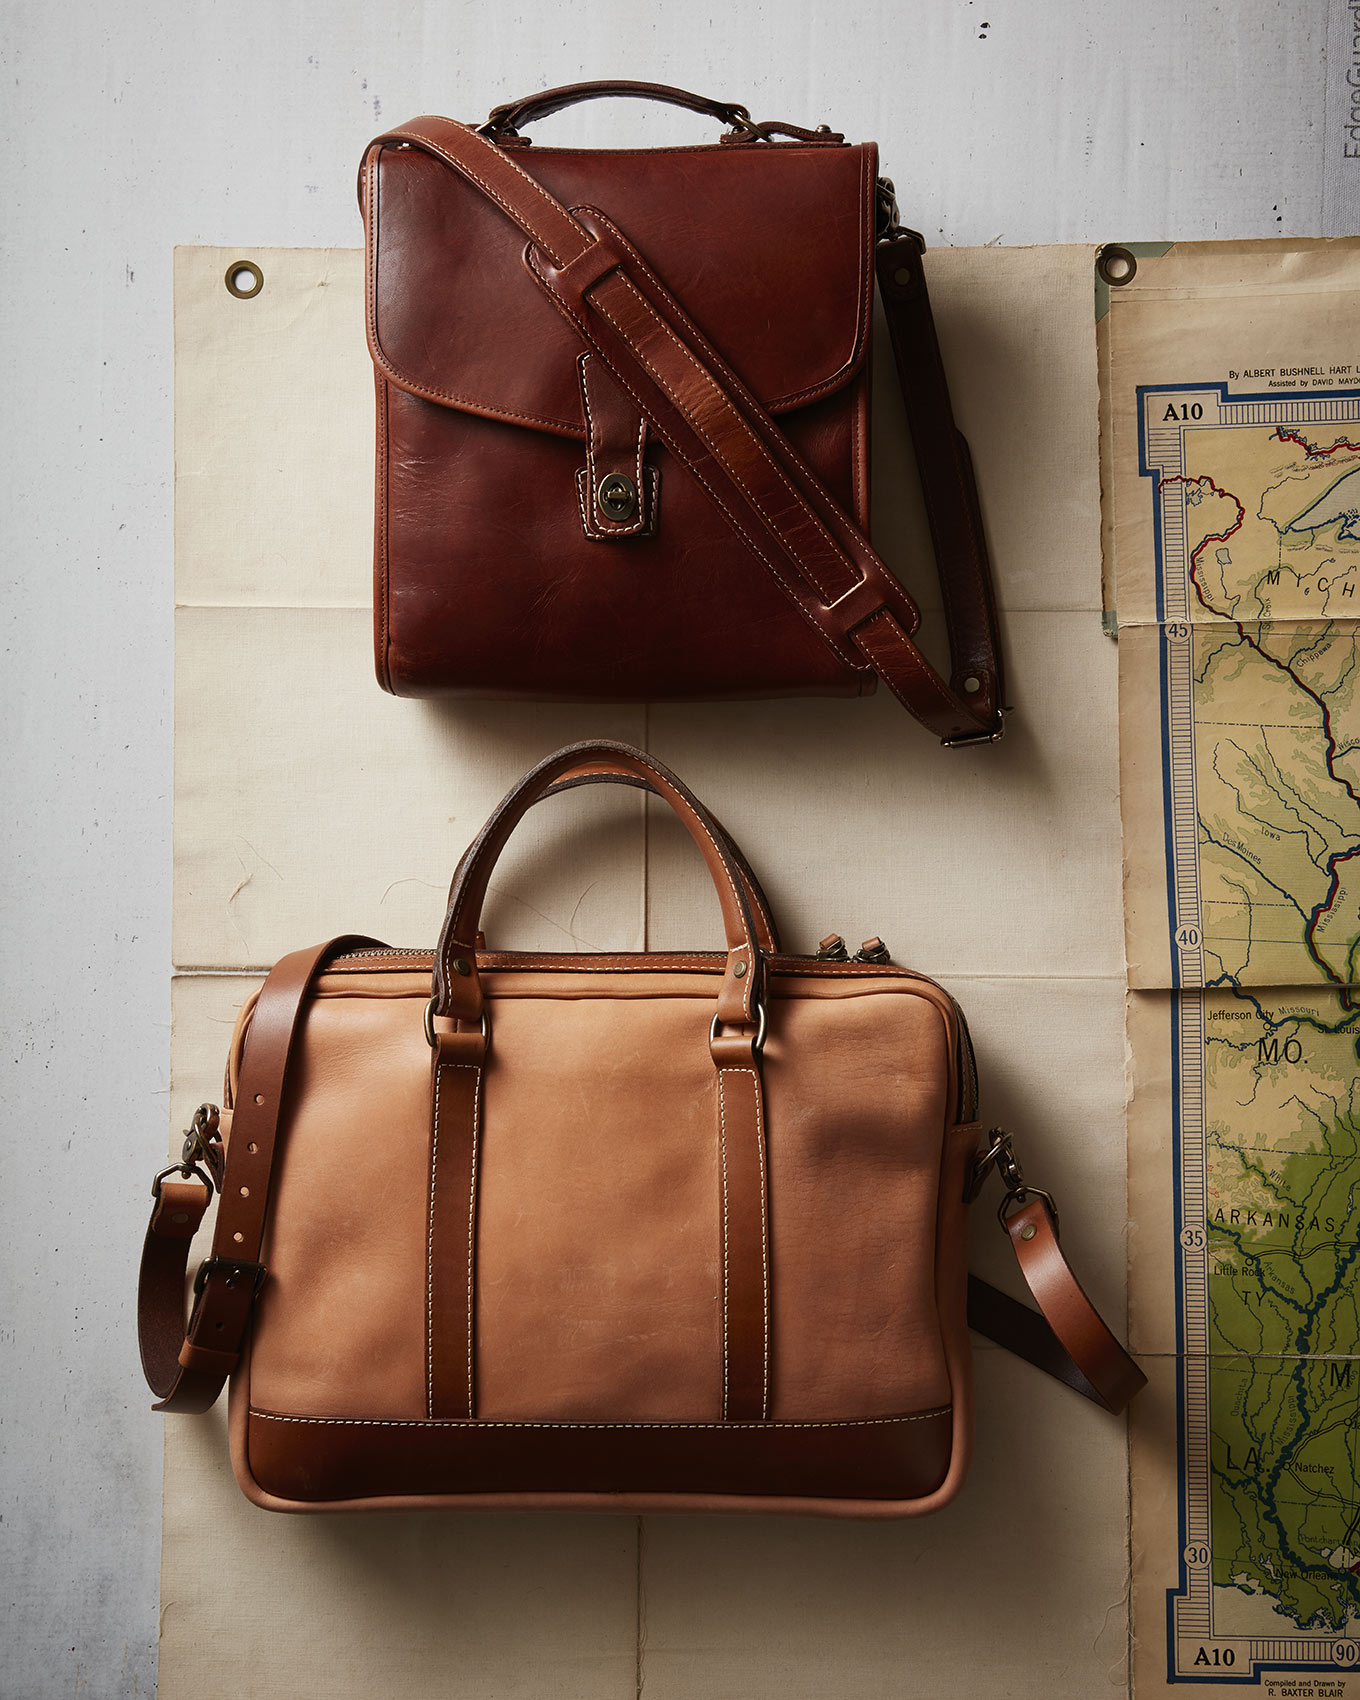 bag_and_map